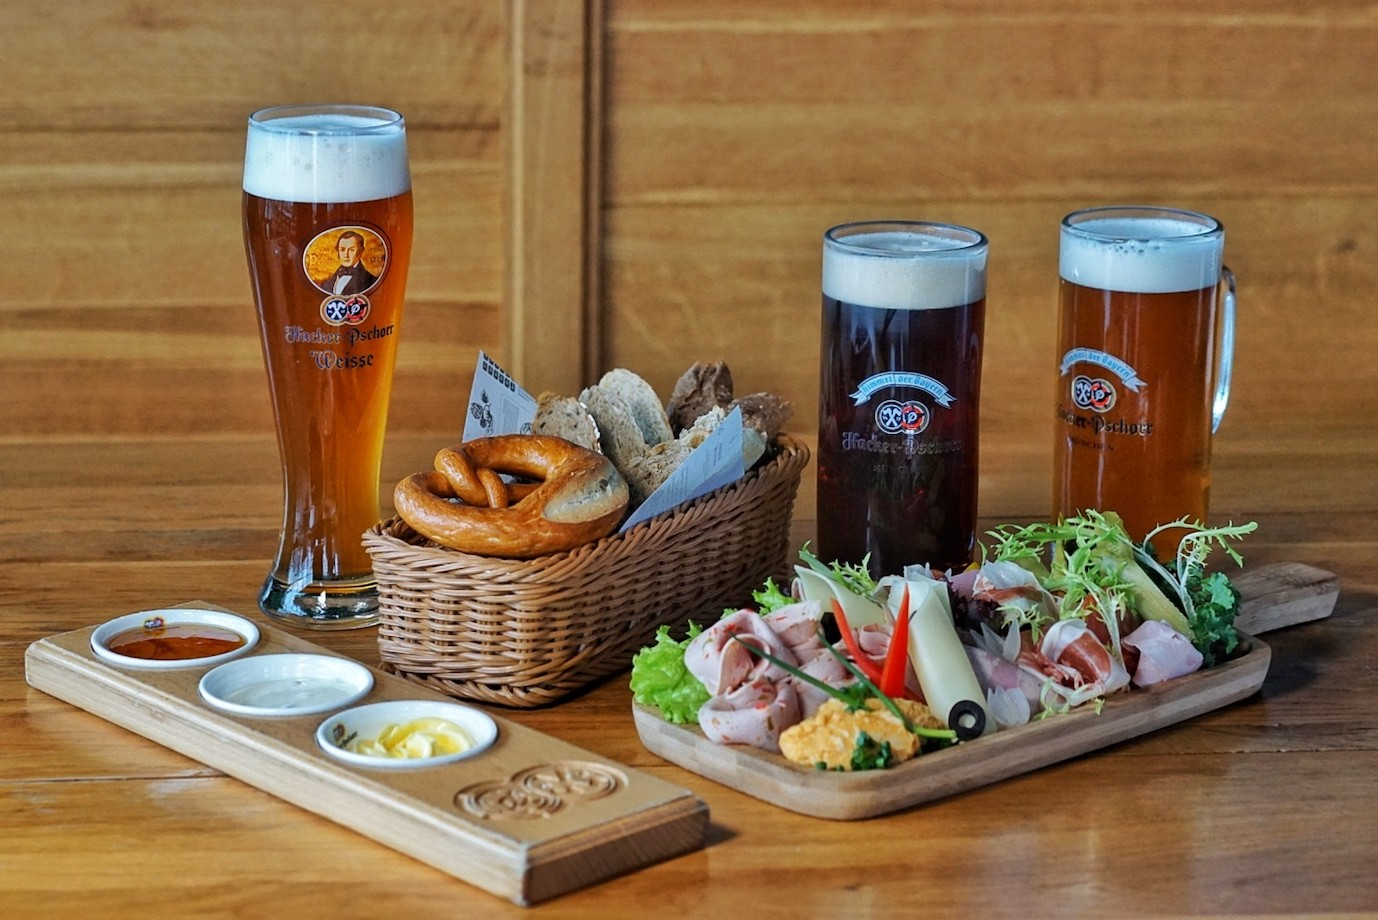 Free Flow German Beer & Food for Just ¥350